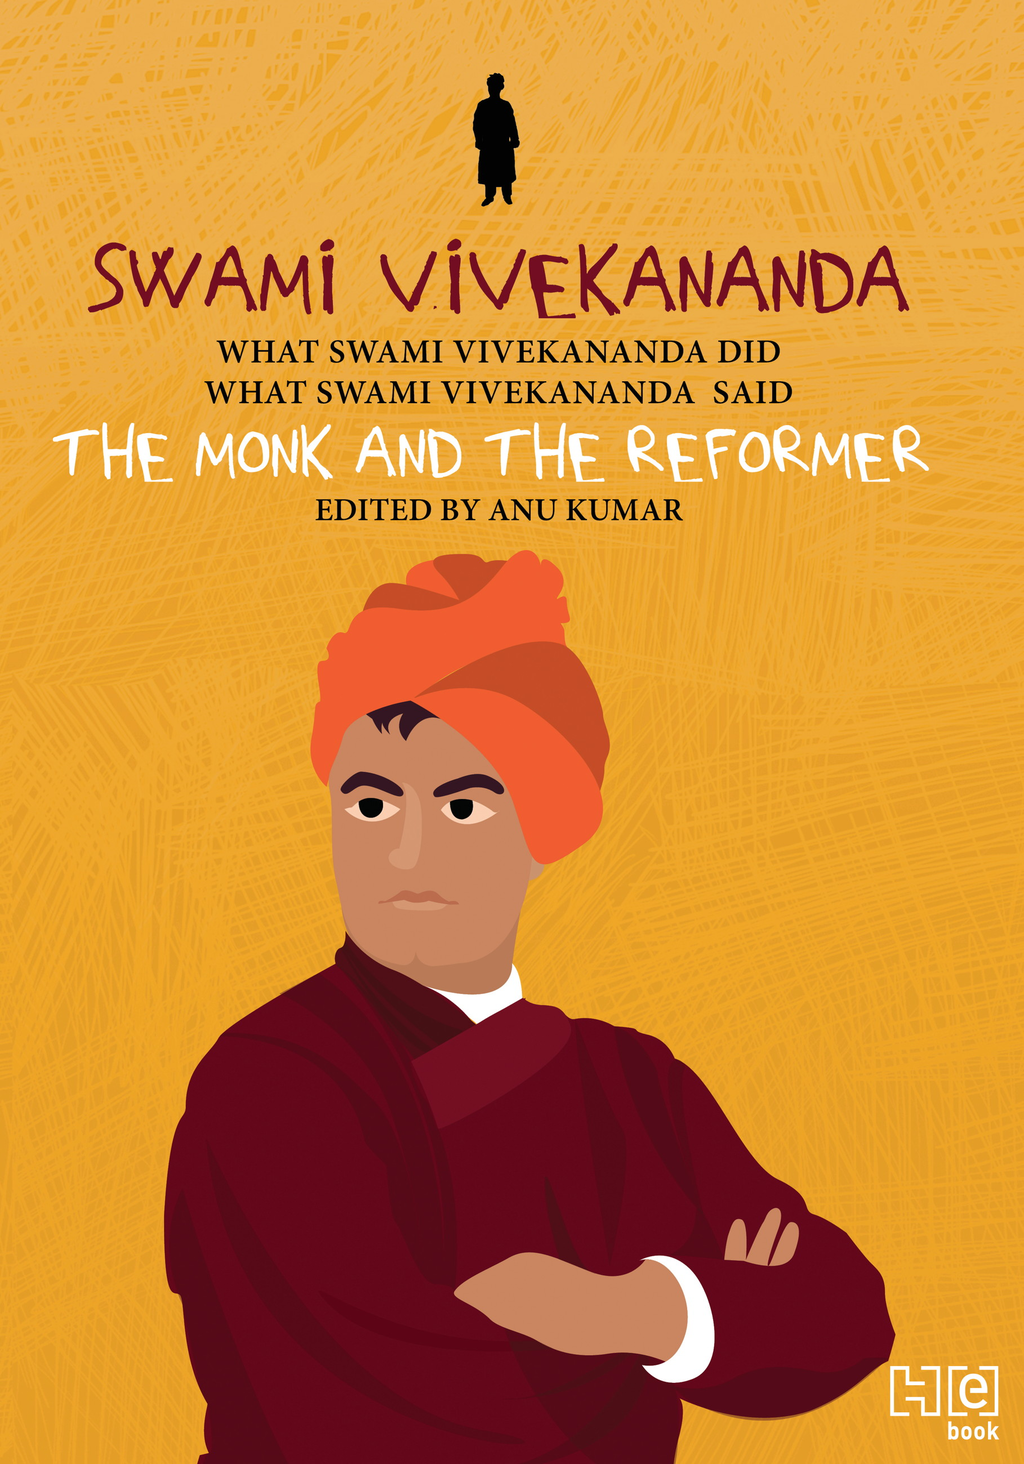 Swami Vivekananda The Monk and The Reformer: What Swami Vivekananda Did,  What Swami Vivekananda Said